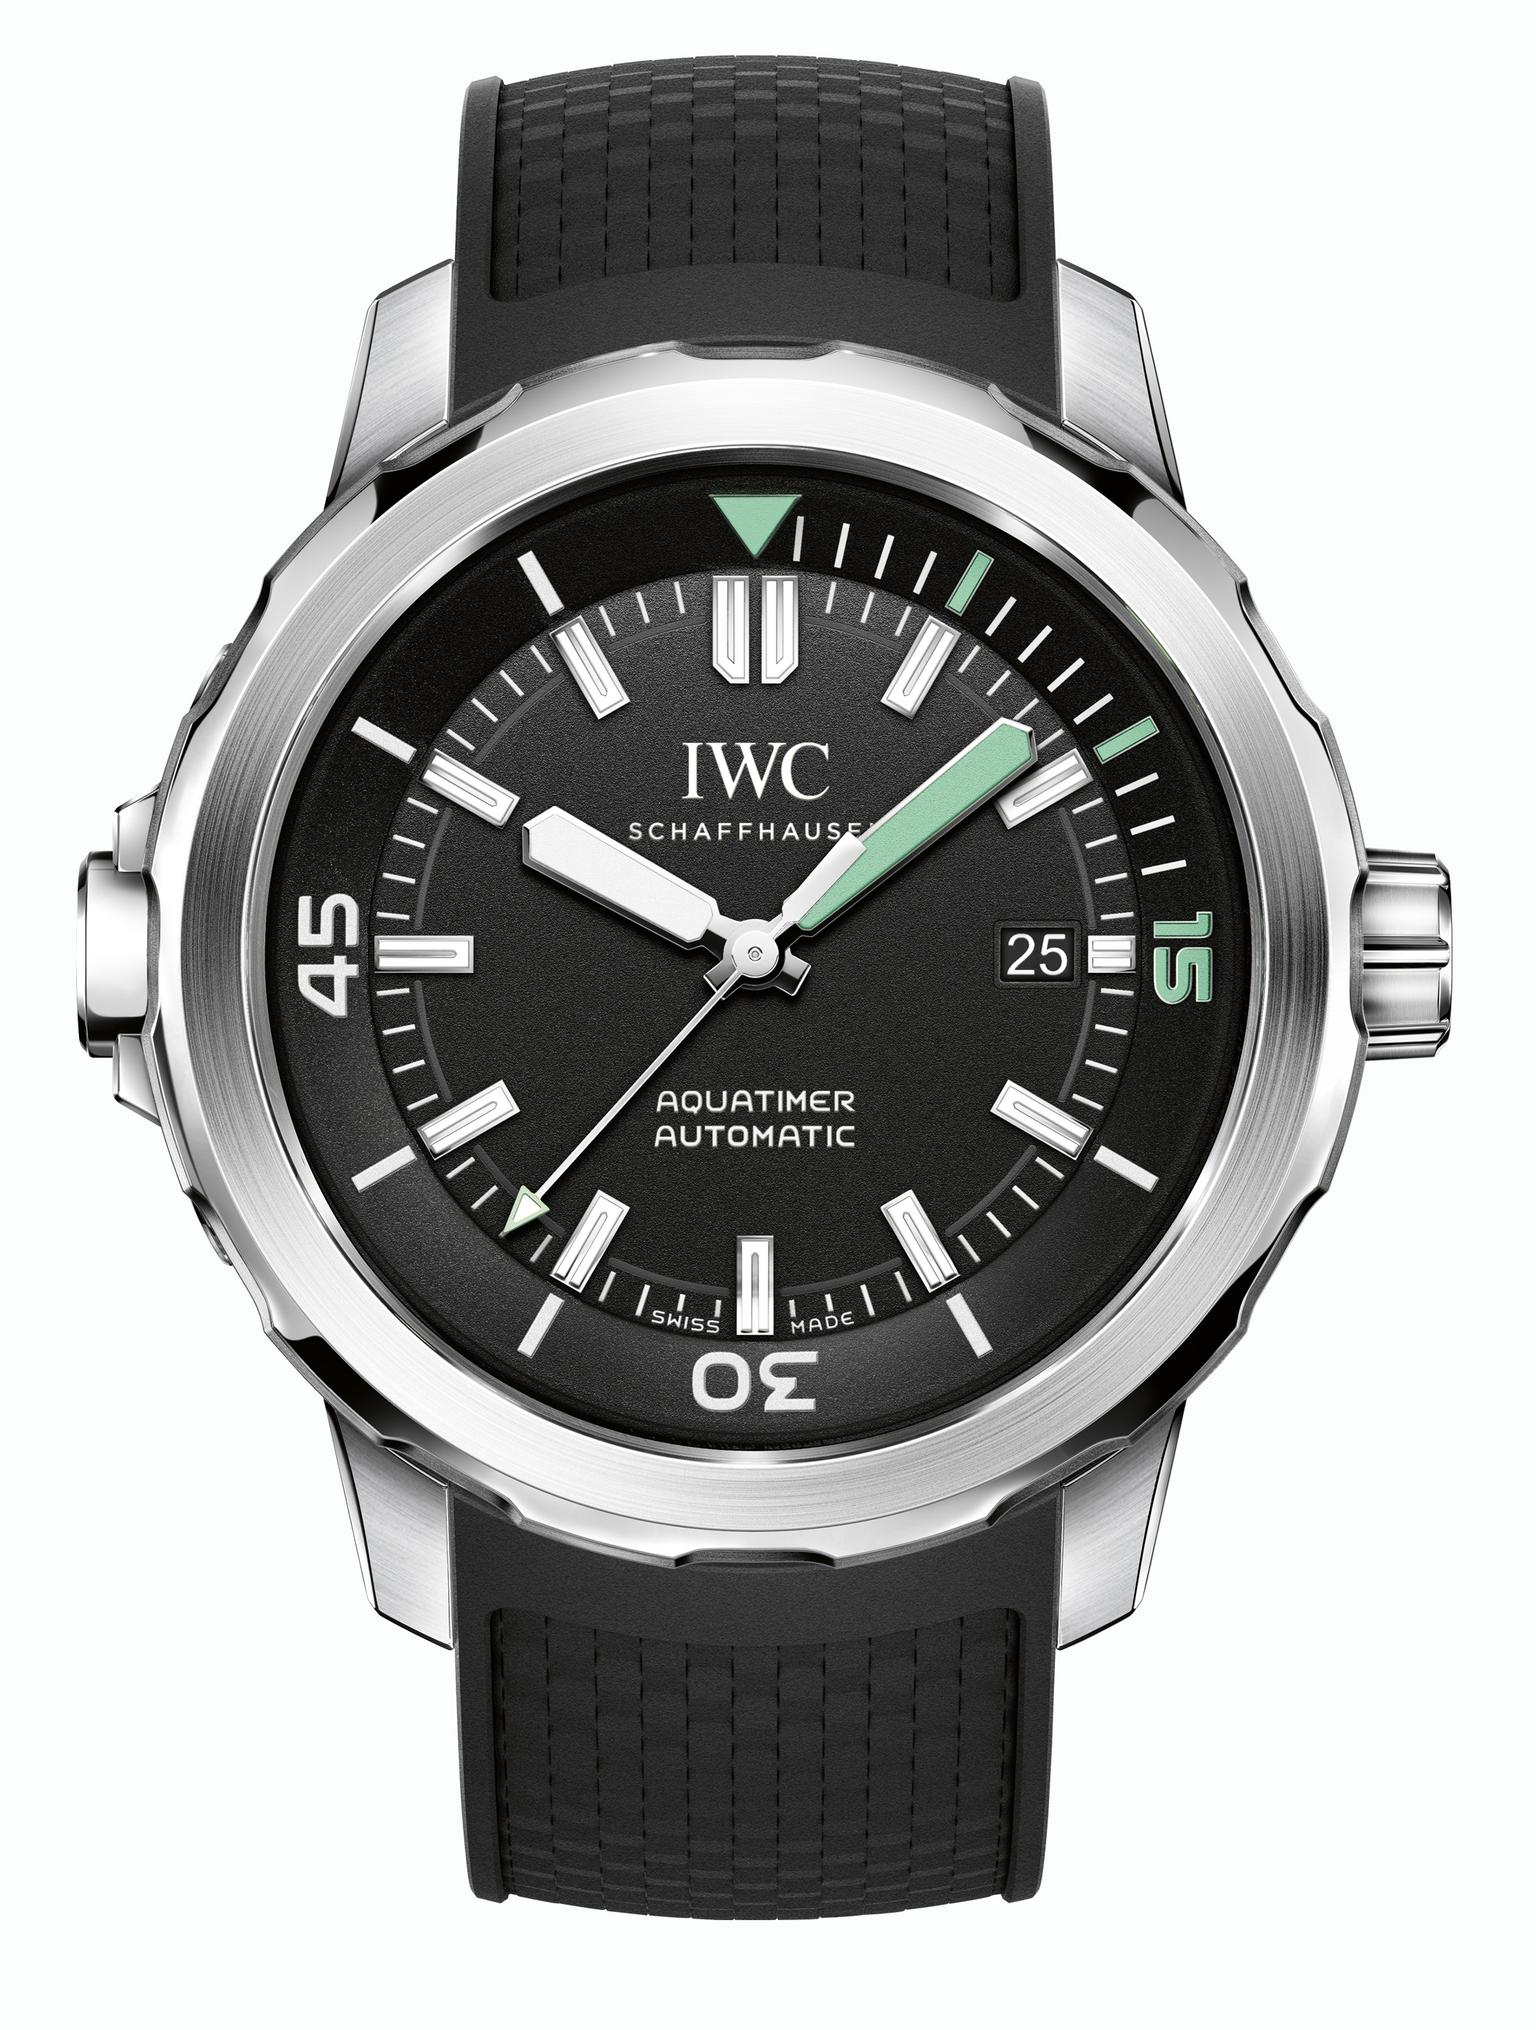 IWC Aquatimer Automatic_20140205_Zoom